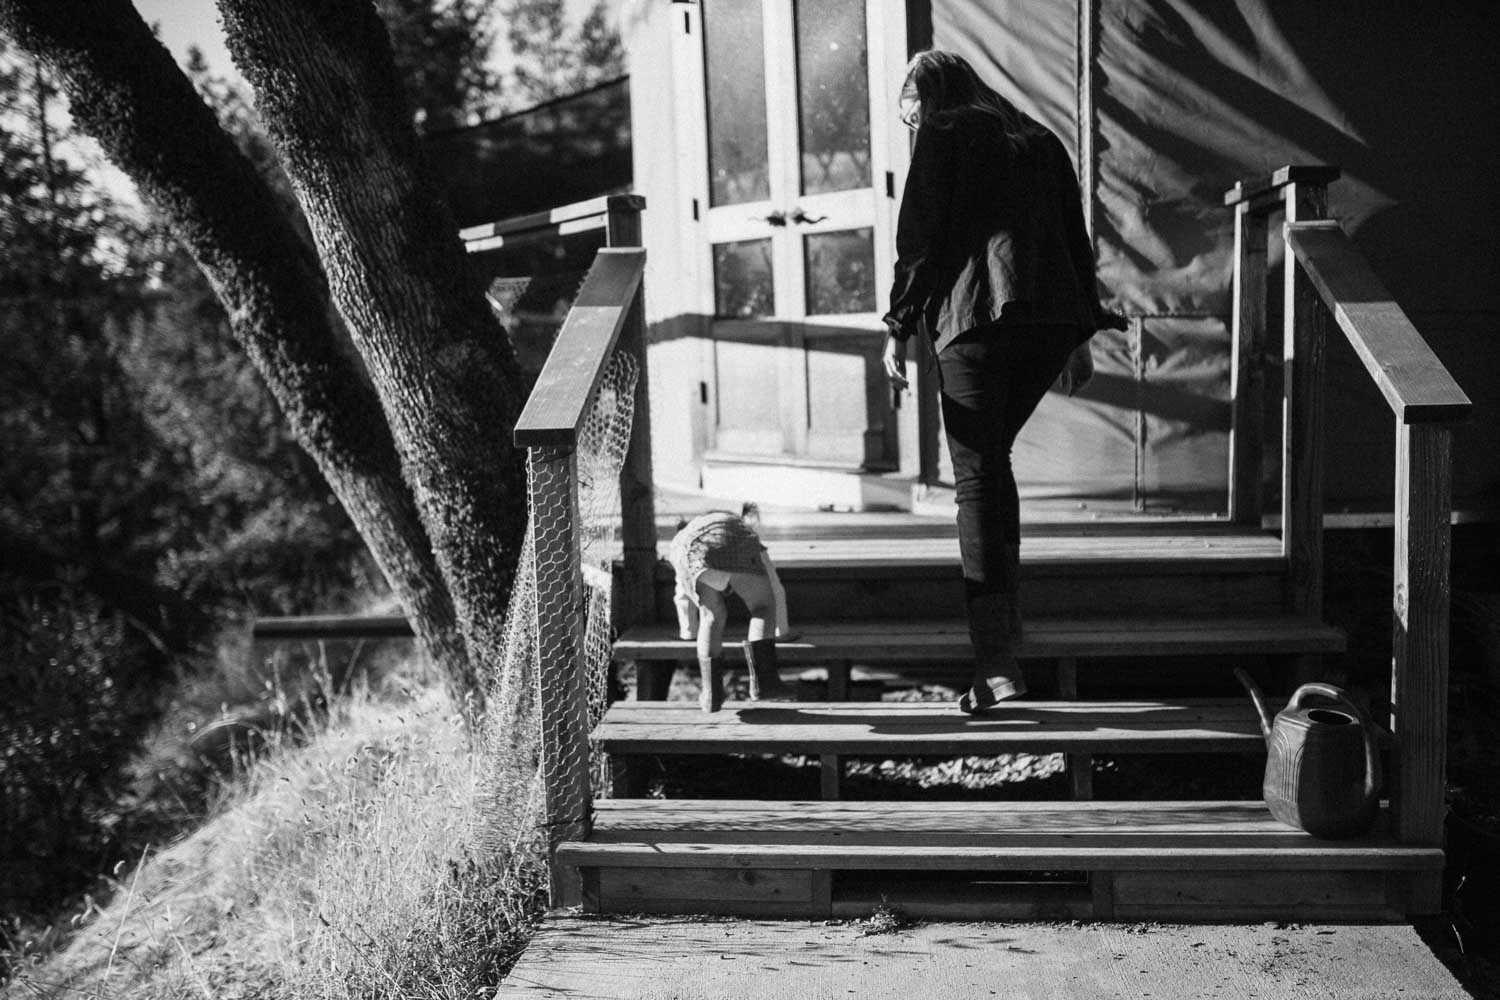 candid-black-ad-white-image-of-mother-and-daughter-walking-into-home-benbow-california